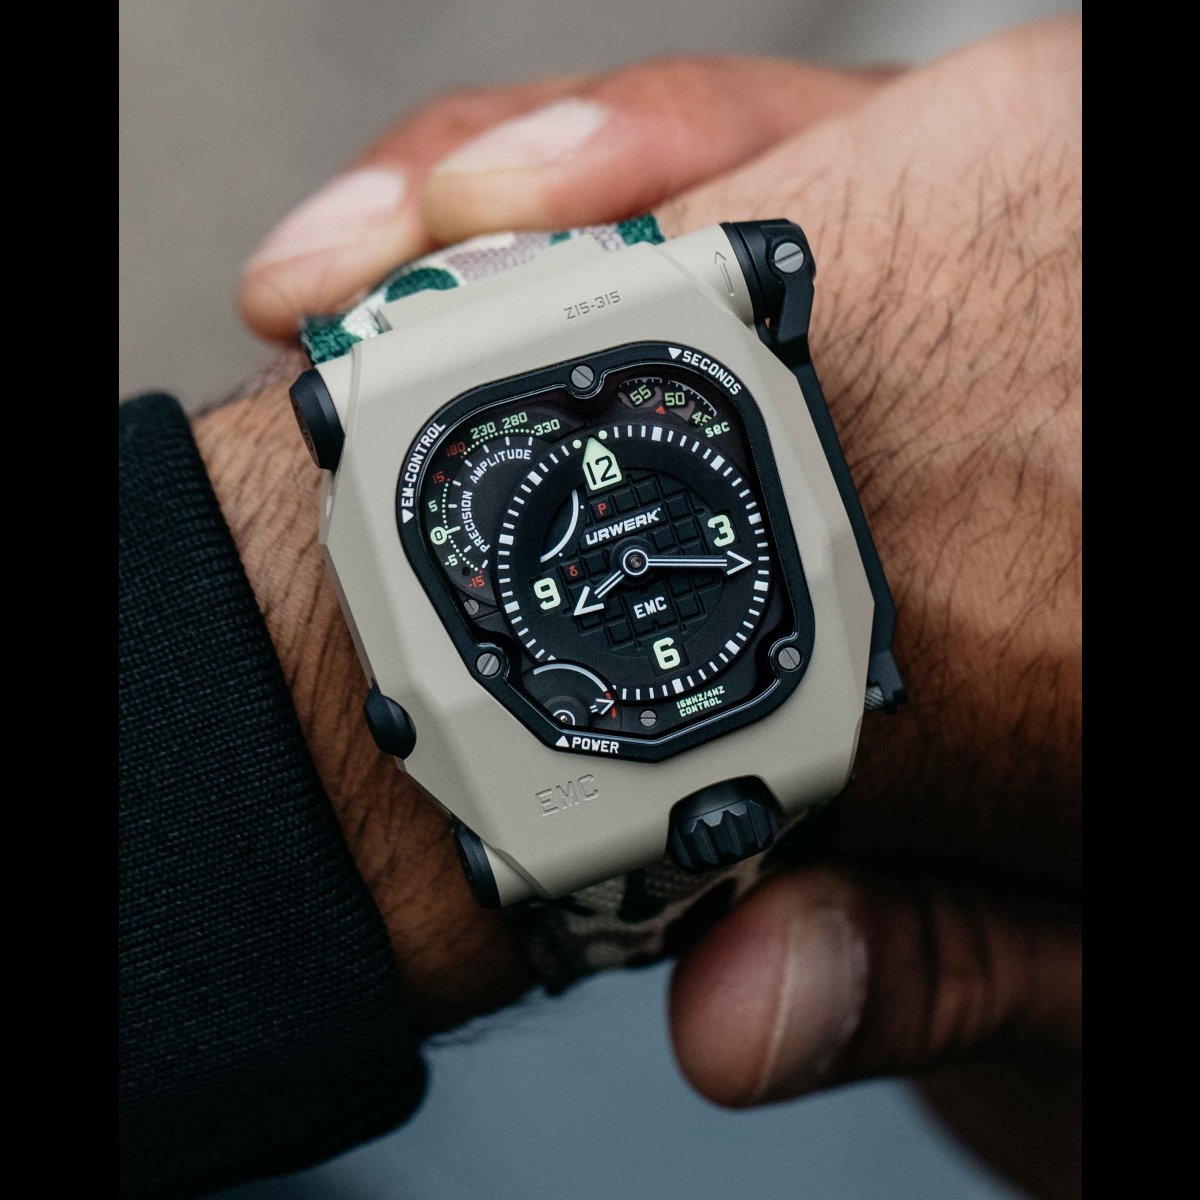 https://www.urwerk.com/sites/default/files/styles/square_ps/public/gallery/desert-sage-1.jpg?itok=vW4x5mJ7